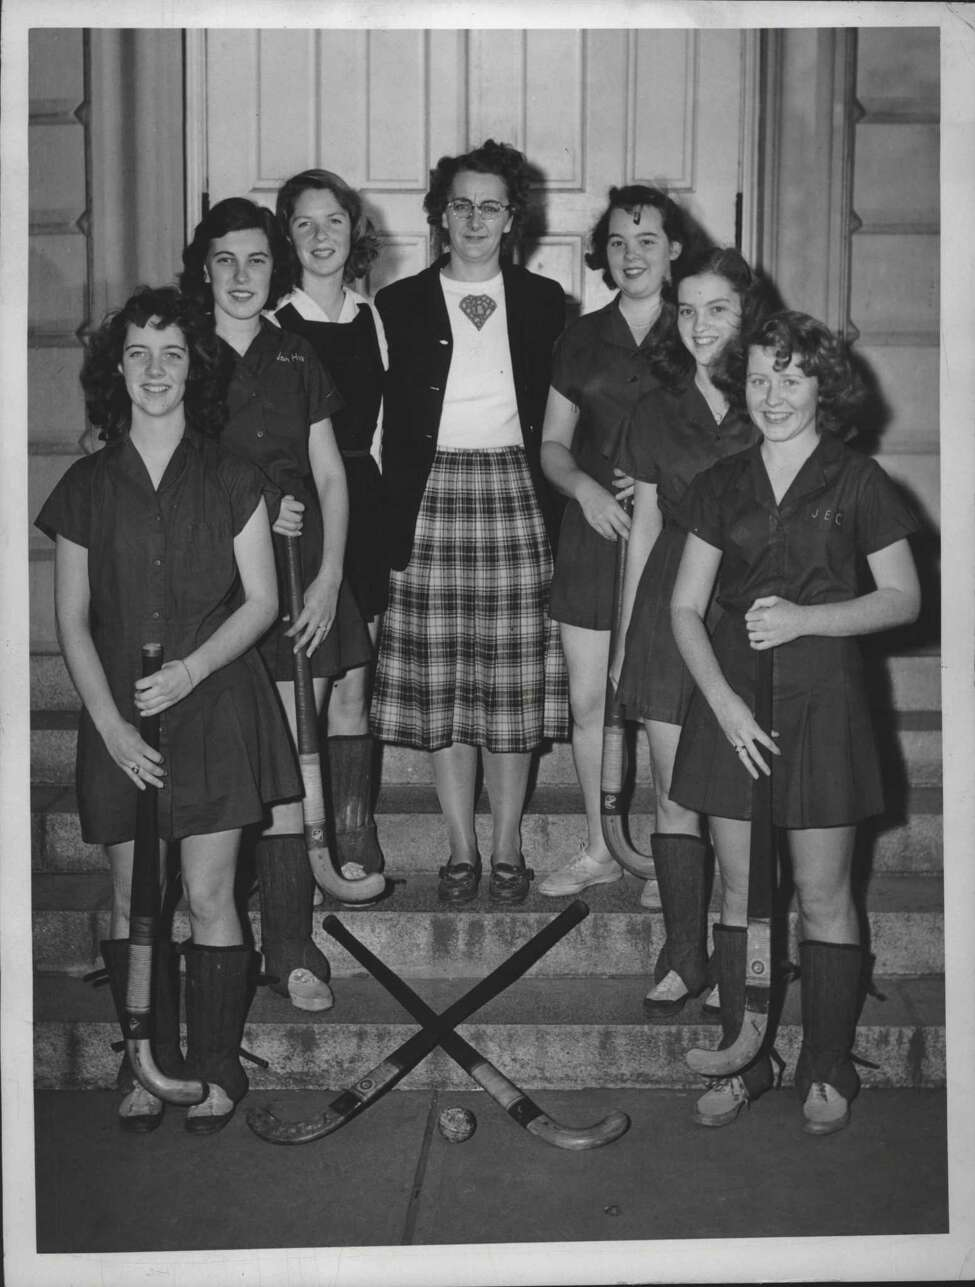 Milne High School field hockey team & coach, Albany, New York - Beverly Orrett, Janet Hicks, Barbara Leete, Lydia Murray - Coach, Helen Bigley, Helen Cupp, and Joan Clark. May 17, 1949 (Times Union Archive)